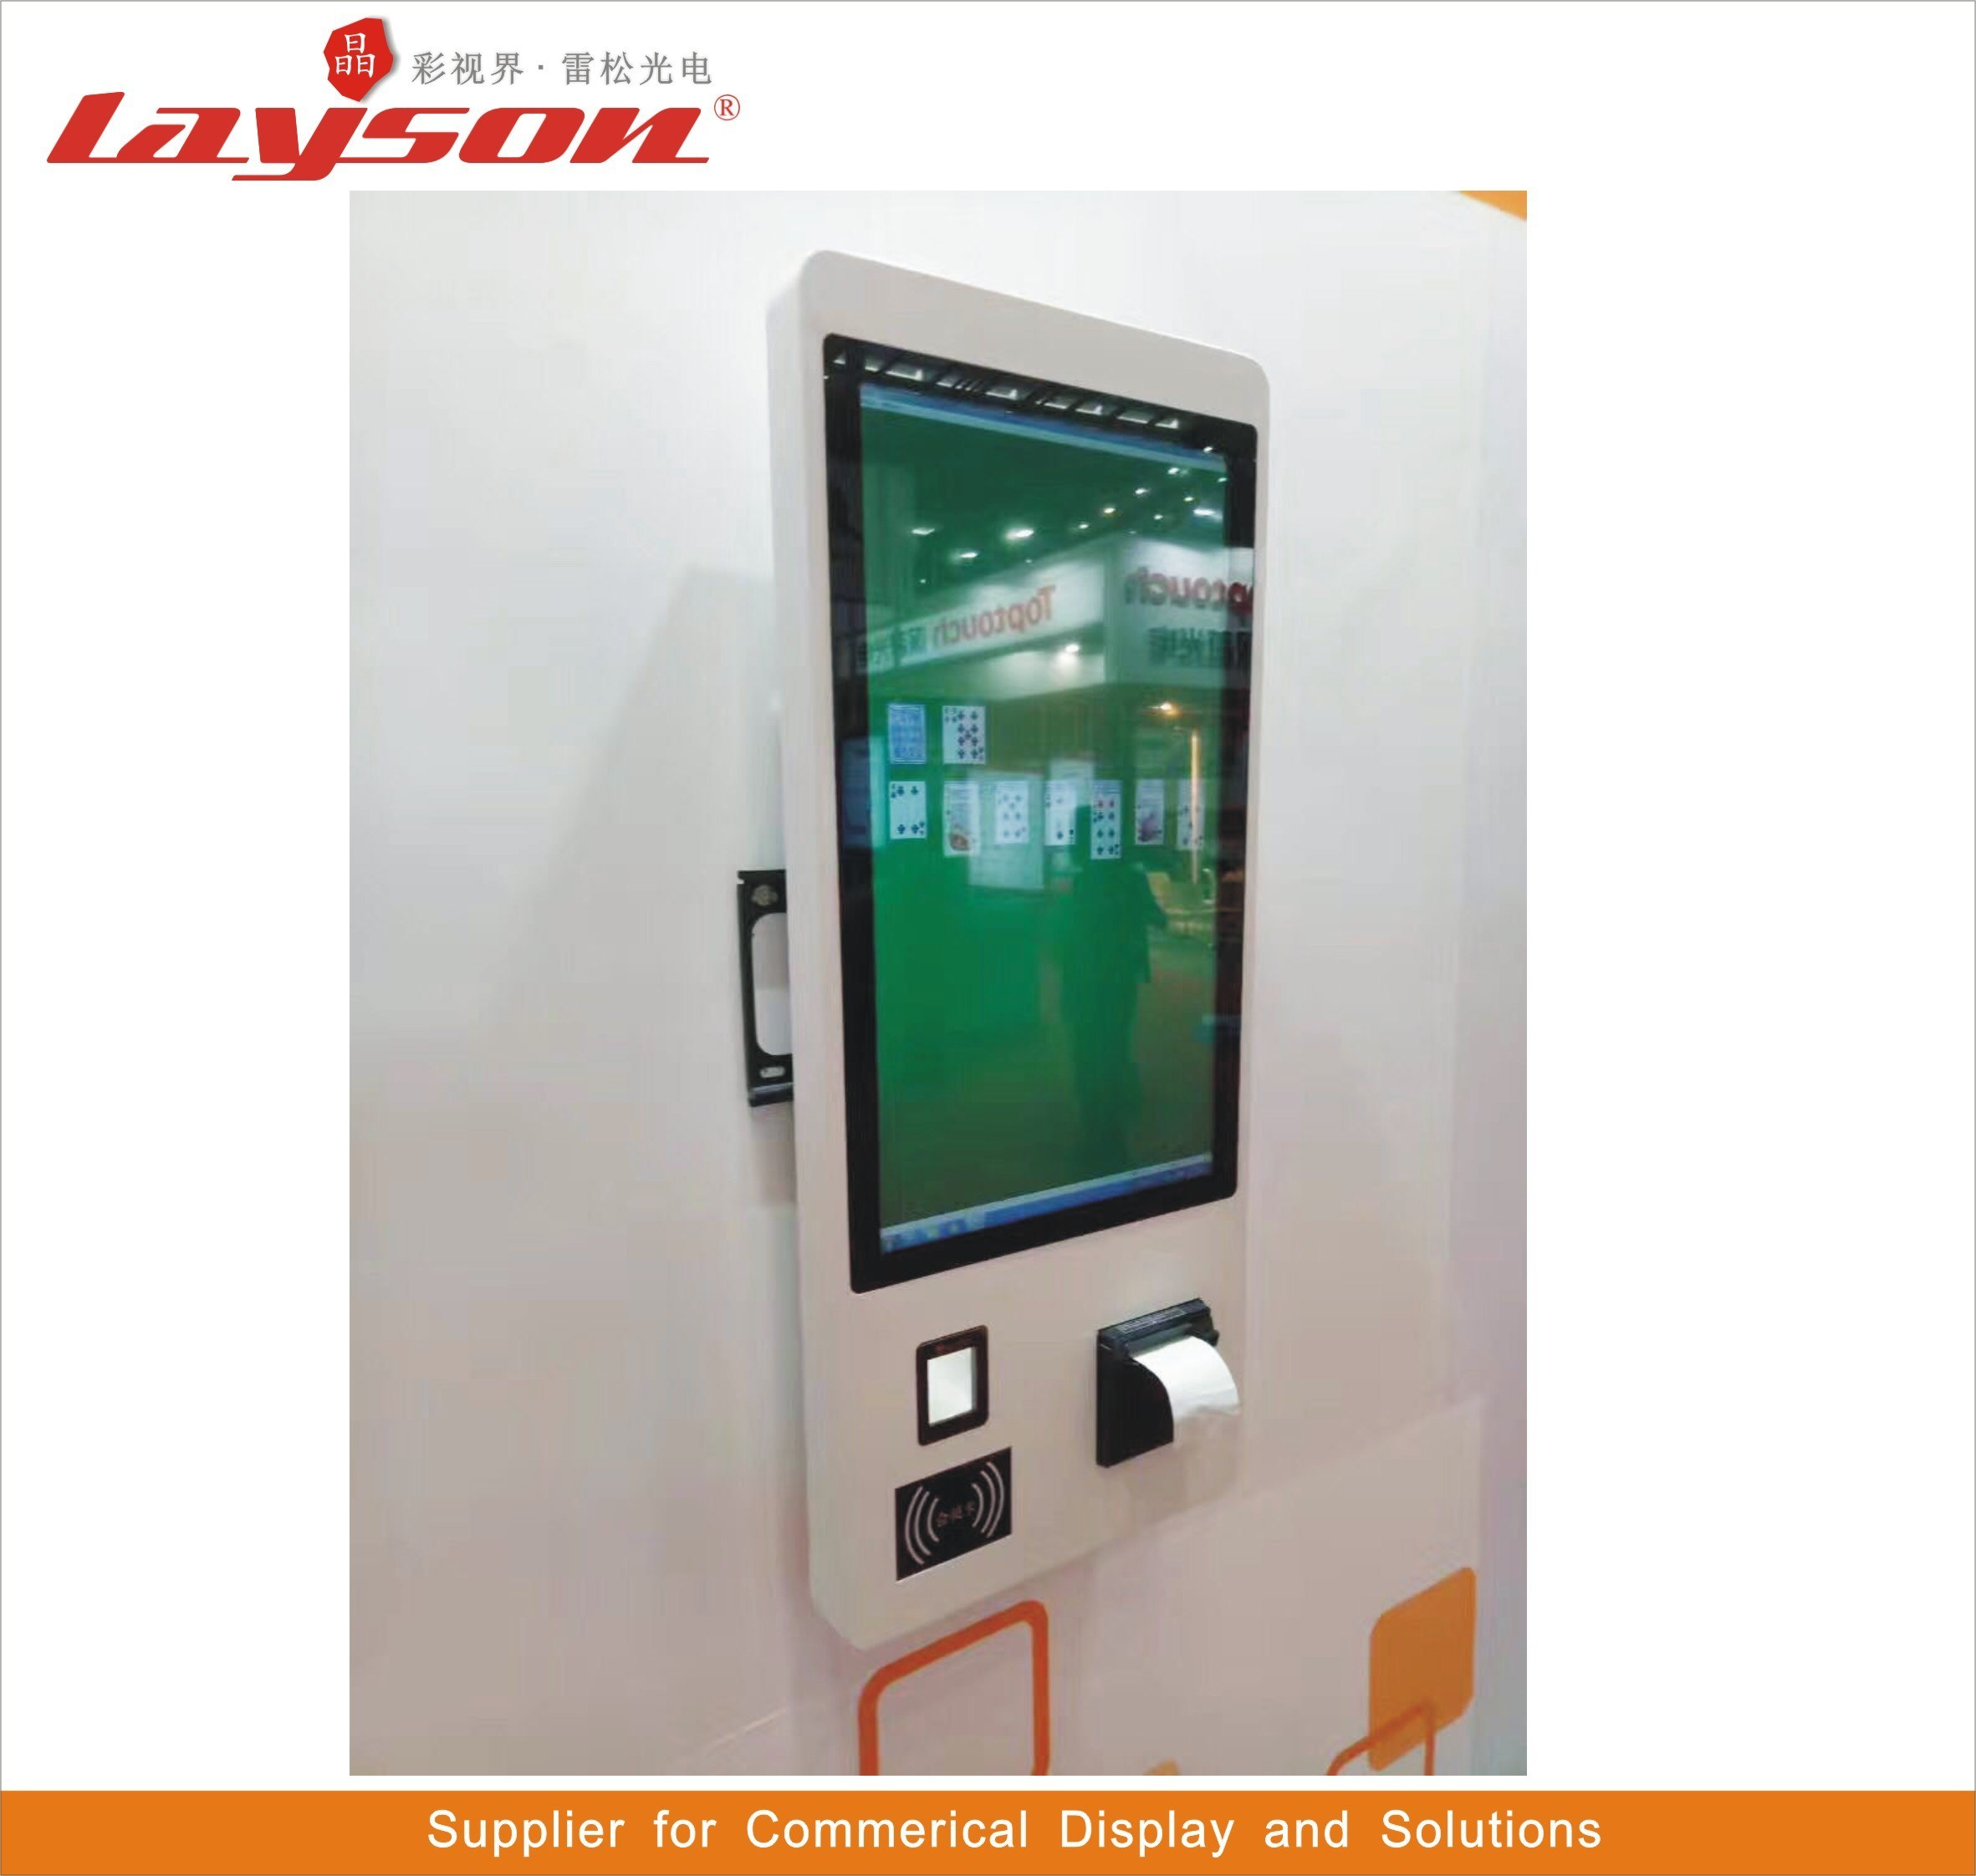 China Oem 27 Inch Touch Screen Lcd Monitor Interactive Panel Touchscreen Samsung S4 Black Advertising Display Player Kiosk Floor Standing Information Self Service Payment